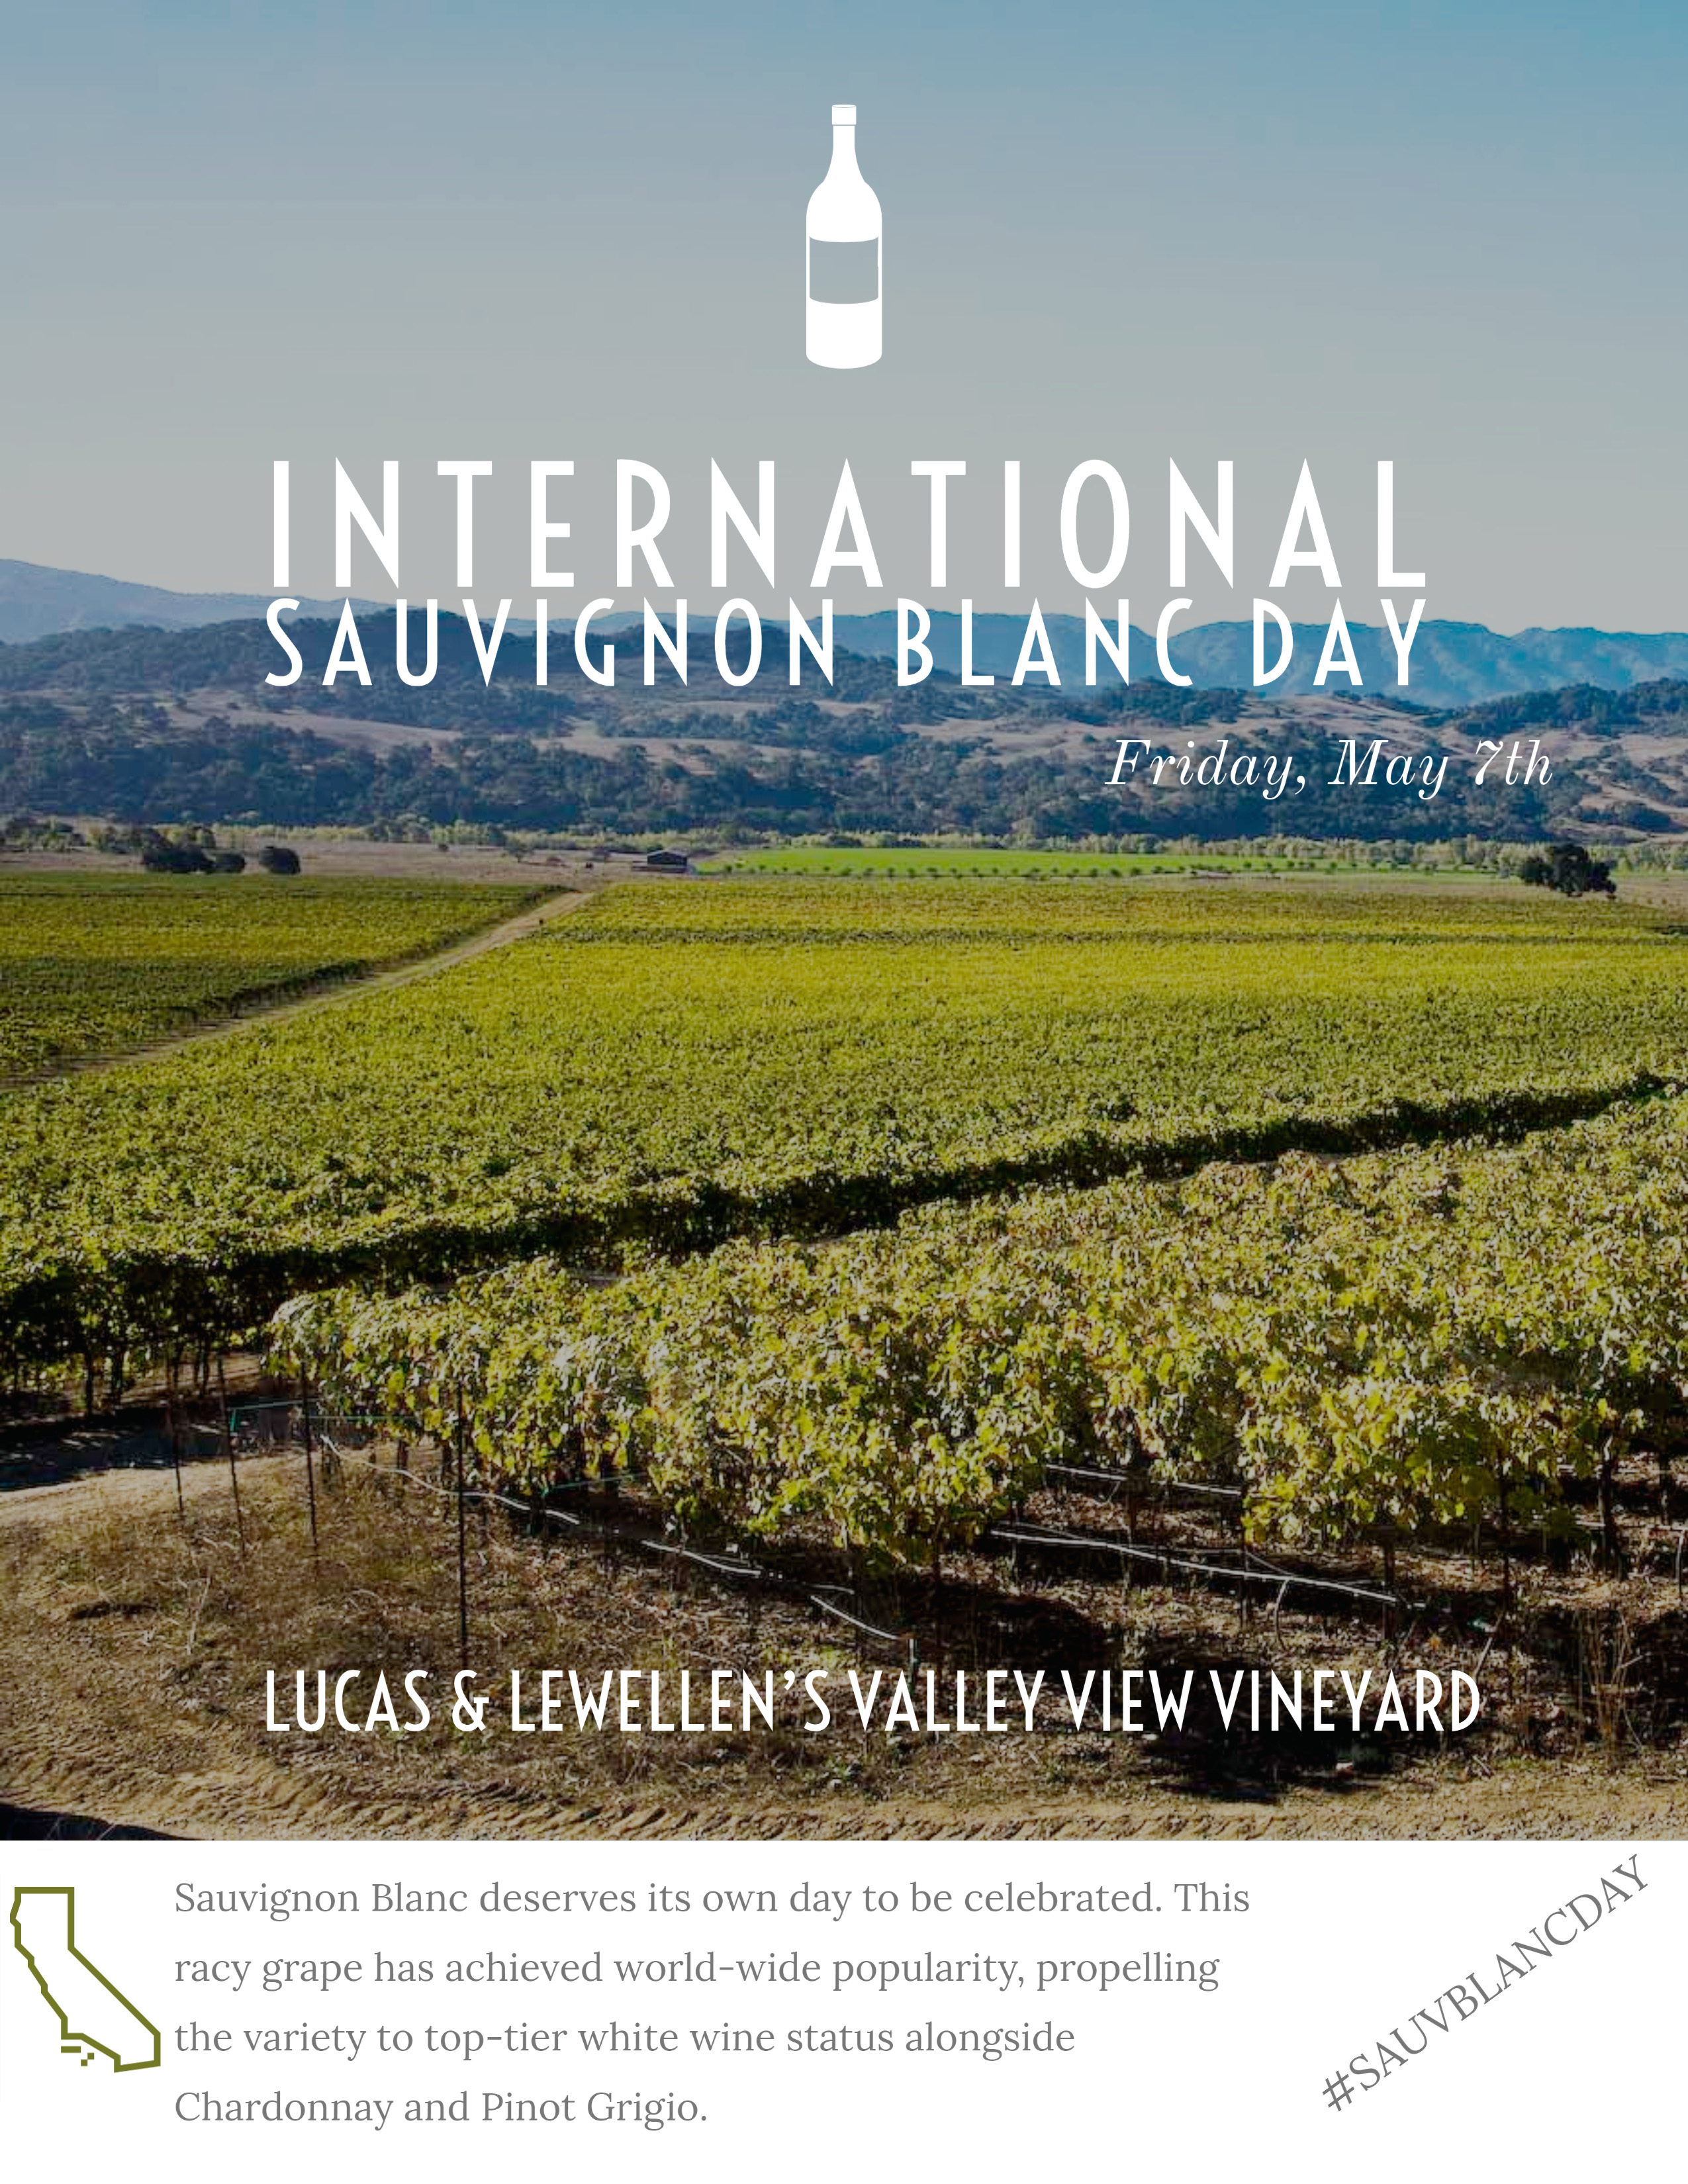 International Sauvignon Blanc Day half-case of Sauvignon Blanc THUMBNAIL